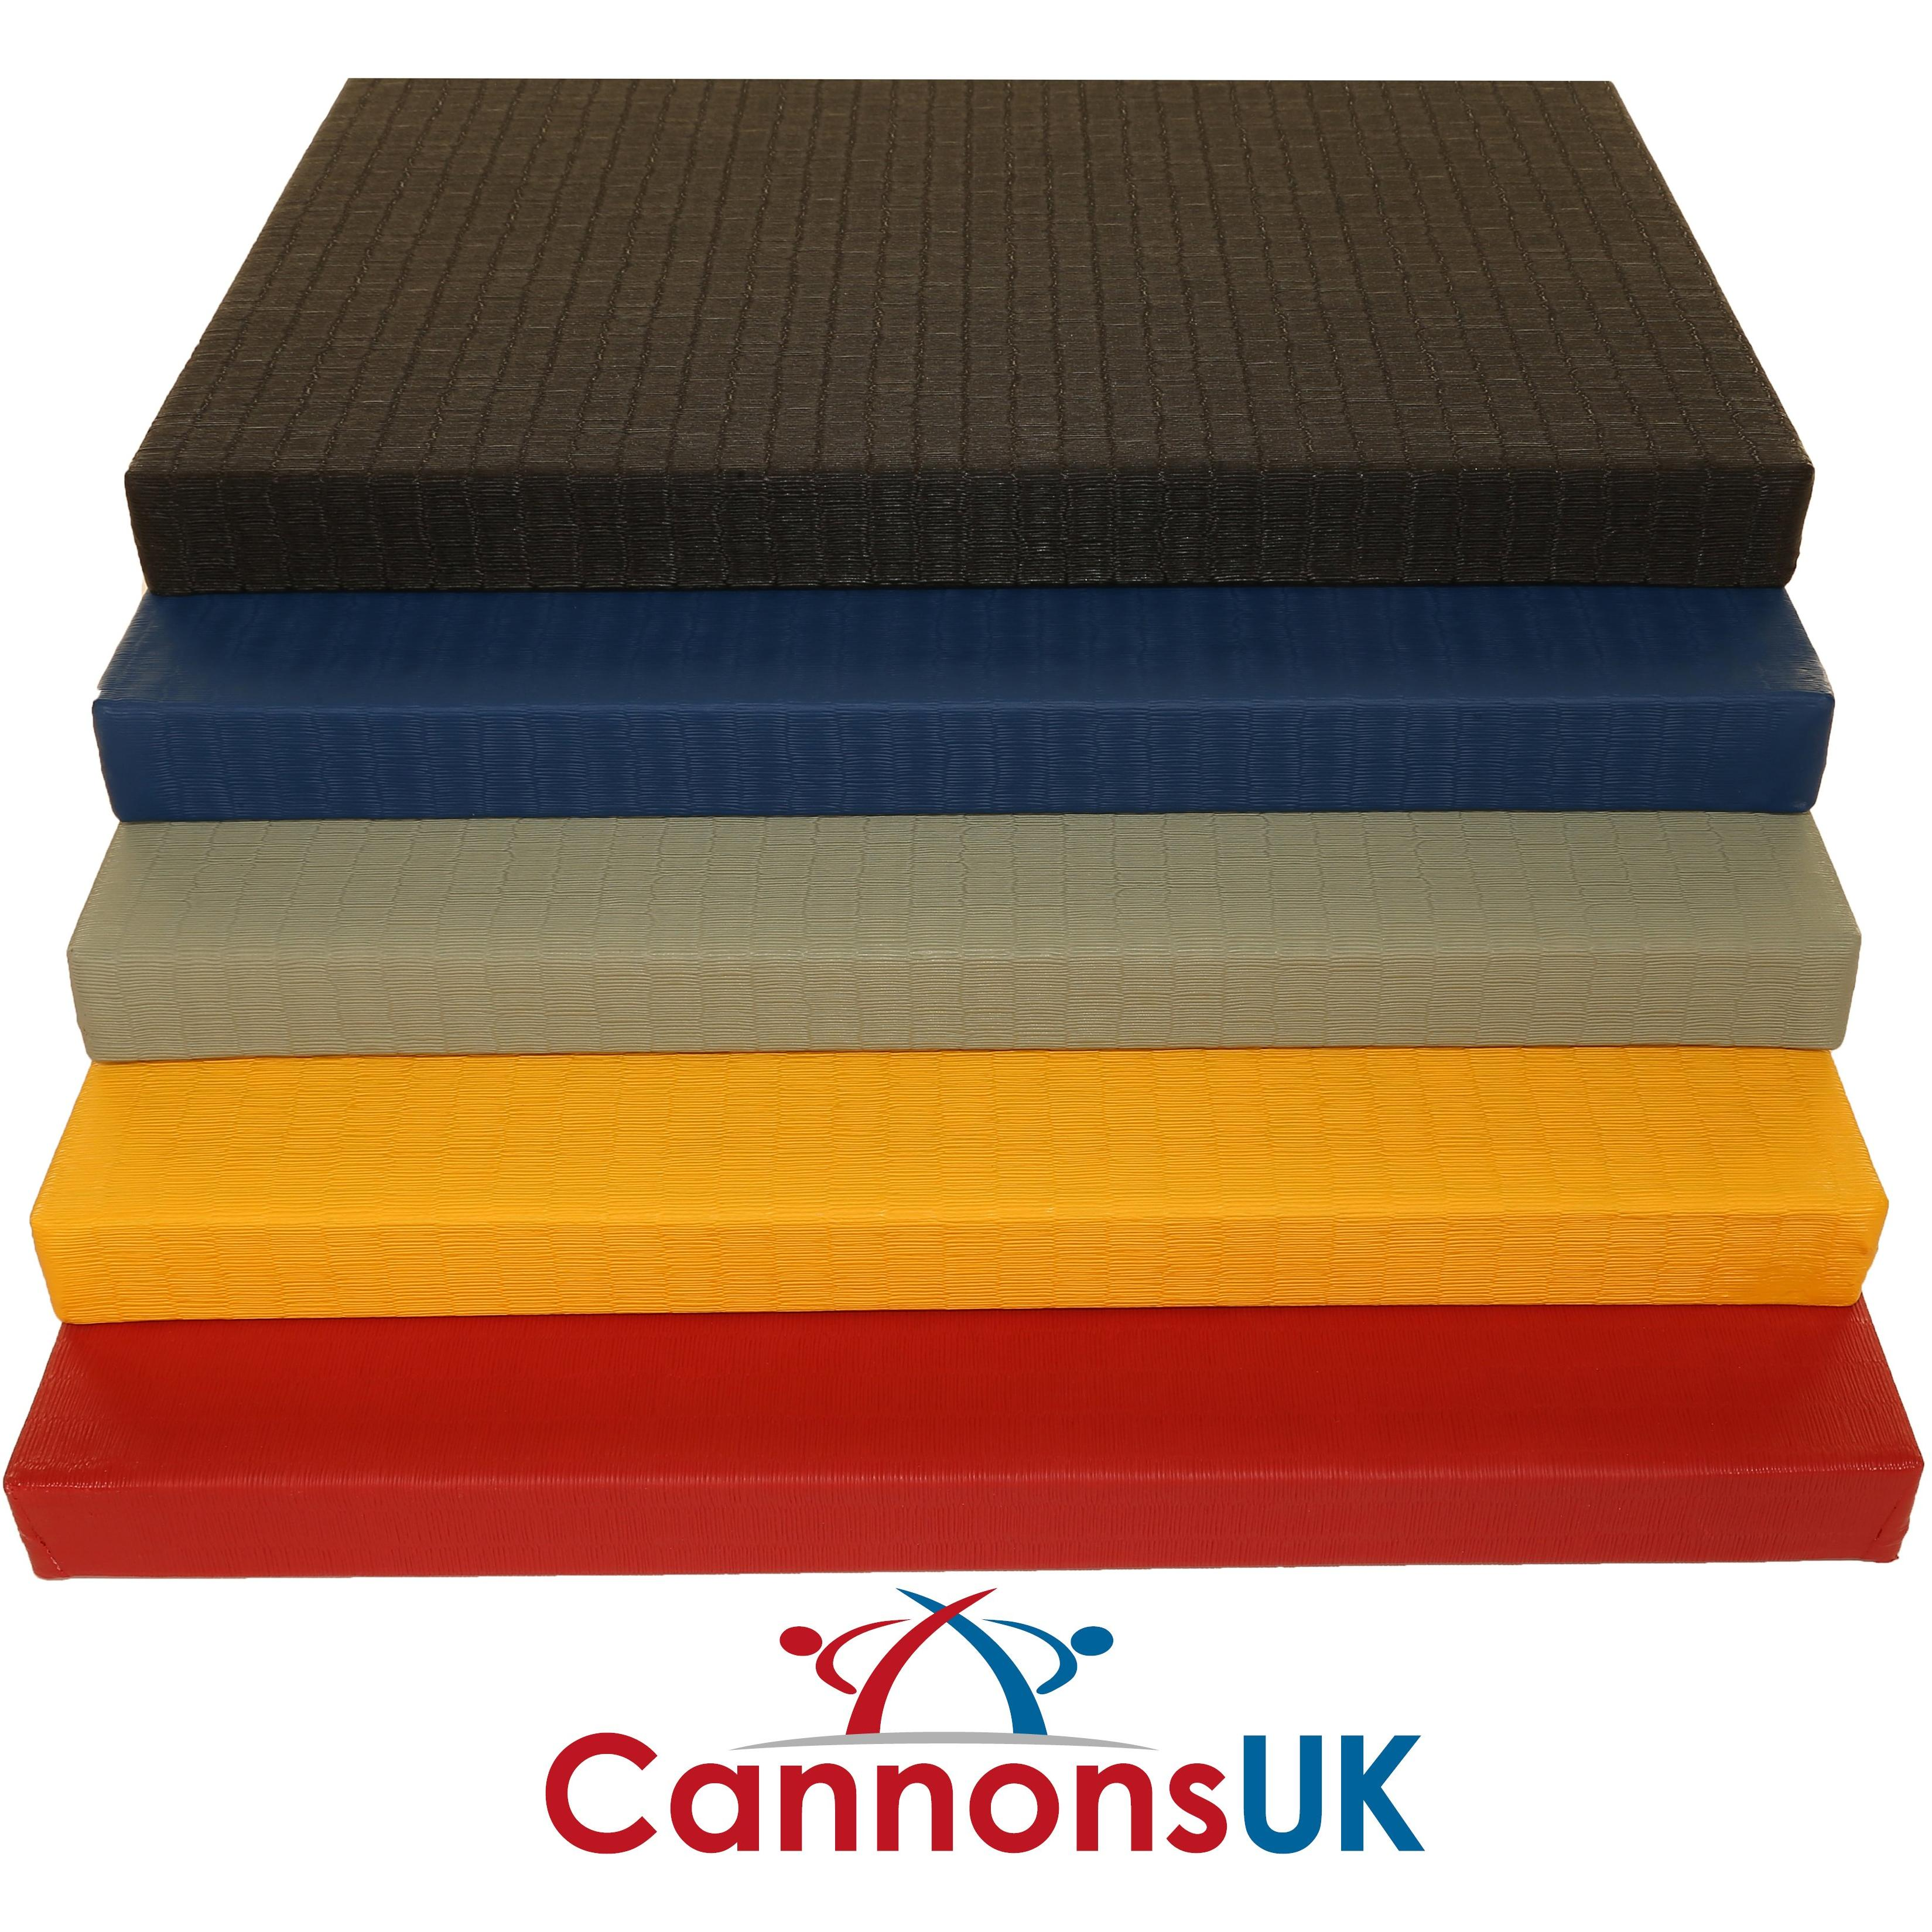 Kay-Metzeler™ Contest Judo Mats from Cannons UK